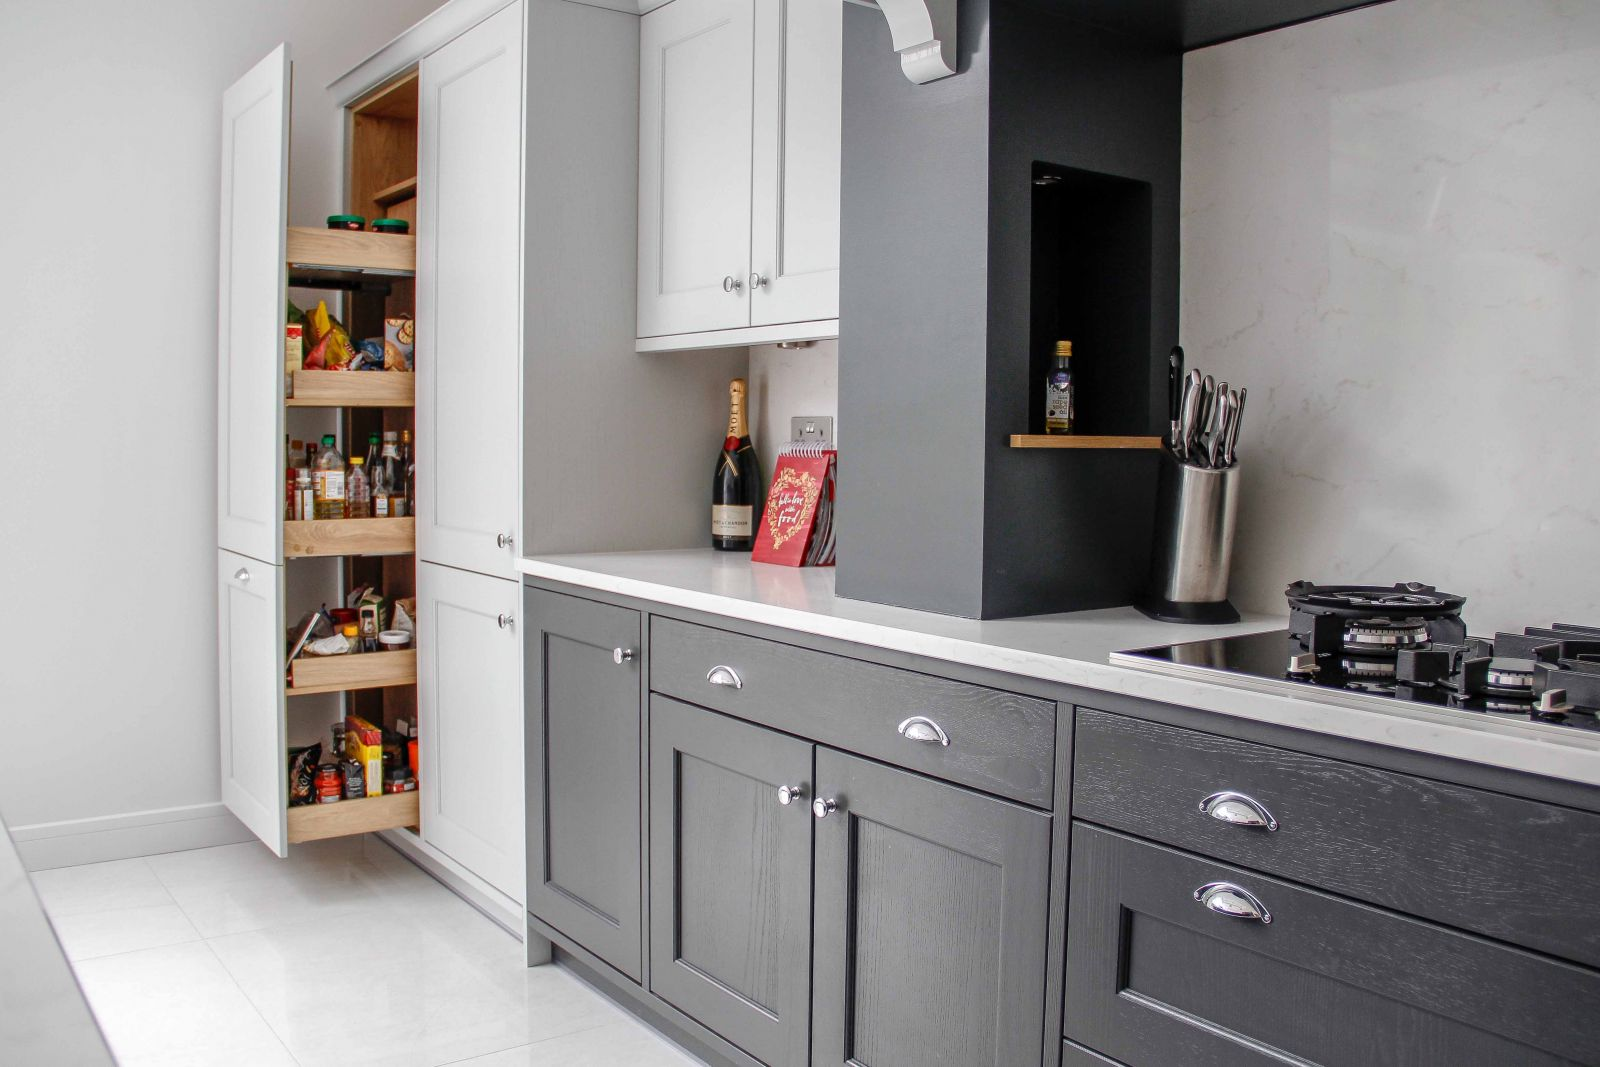 Classic Shaker Kitchen with Pull-Out Magna Space Kitchen Storage by Sigma 3 Kitchens